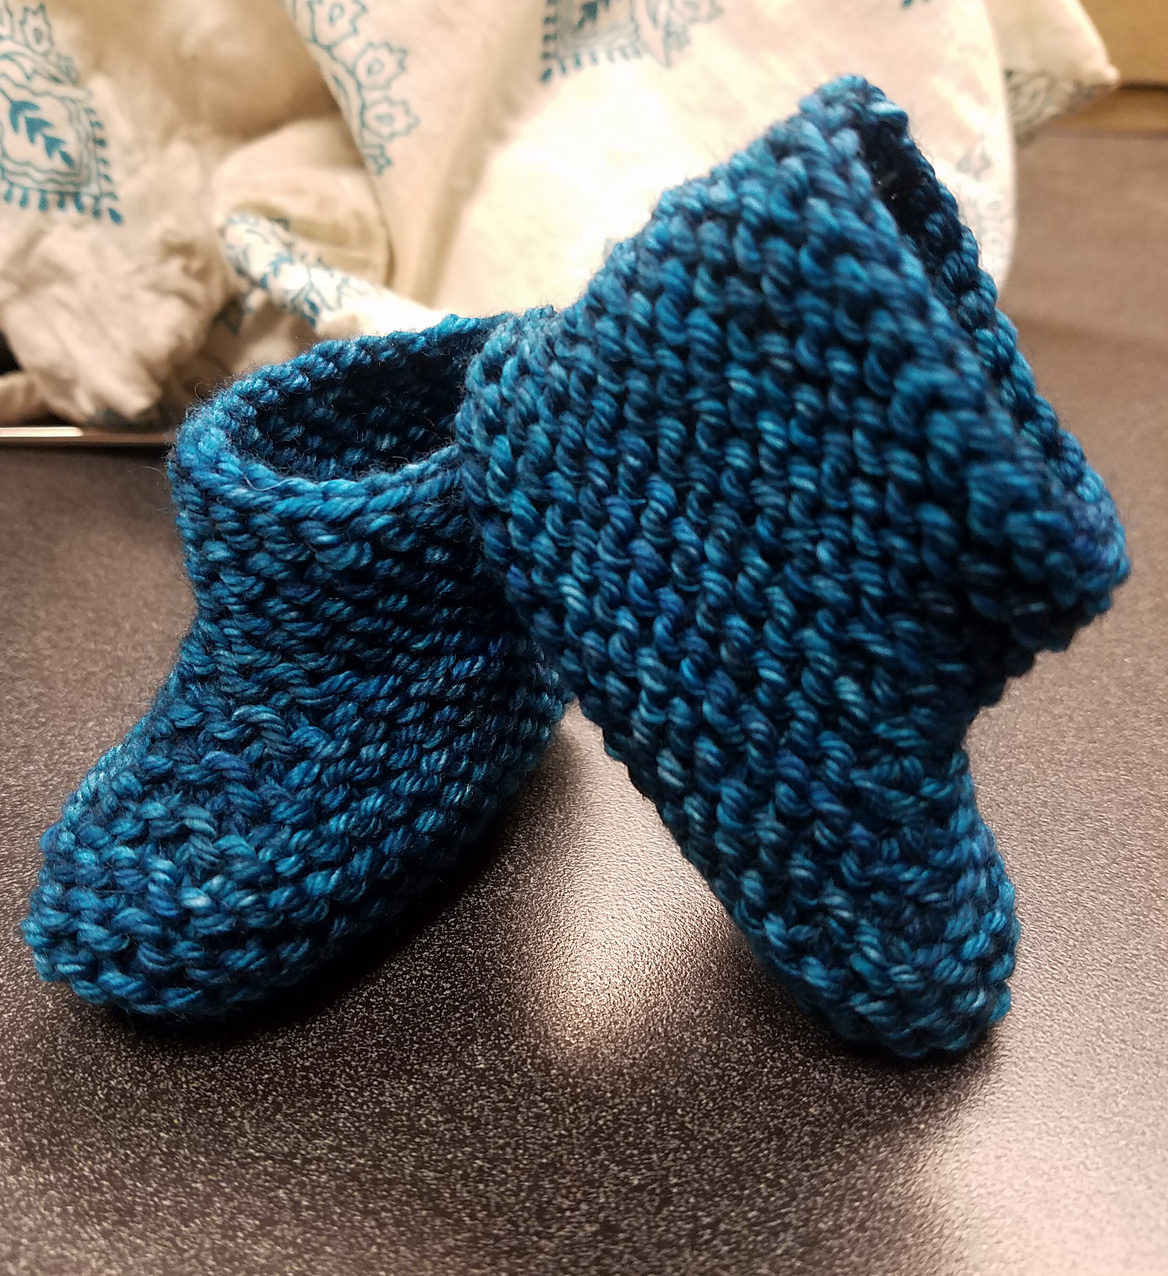 Knitting Patterns for Beginners Unique Beginner Knitting Patterns Of Superb 47 Pics Knitting Patterns for Beginners